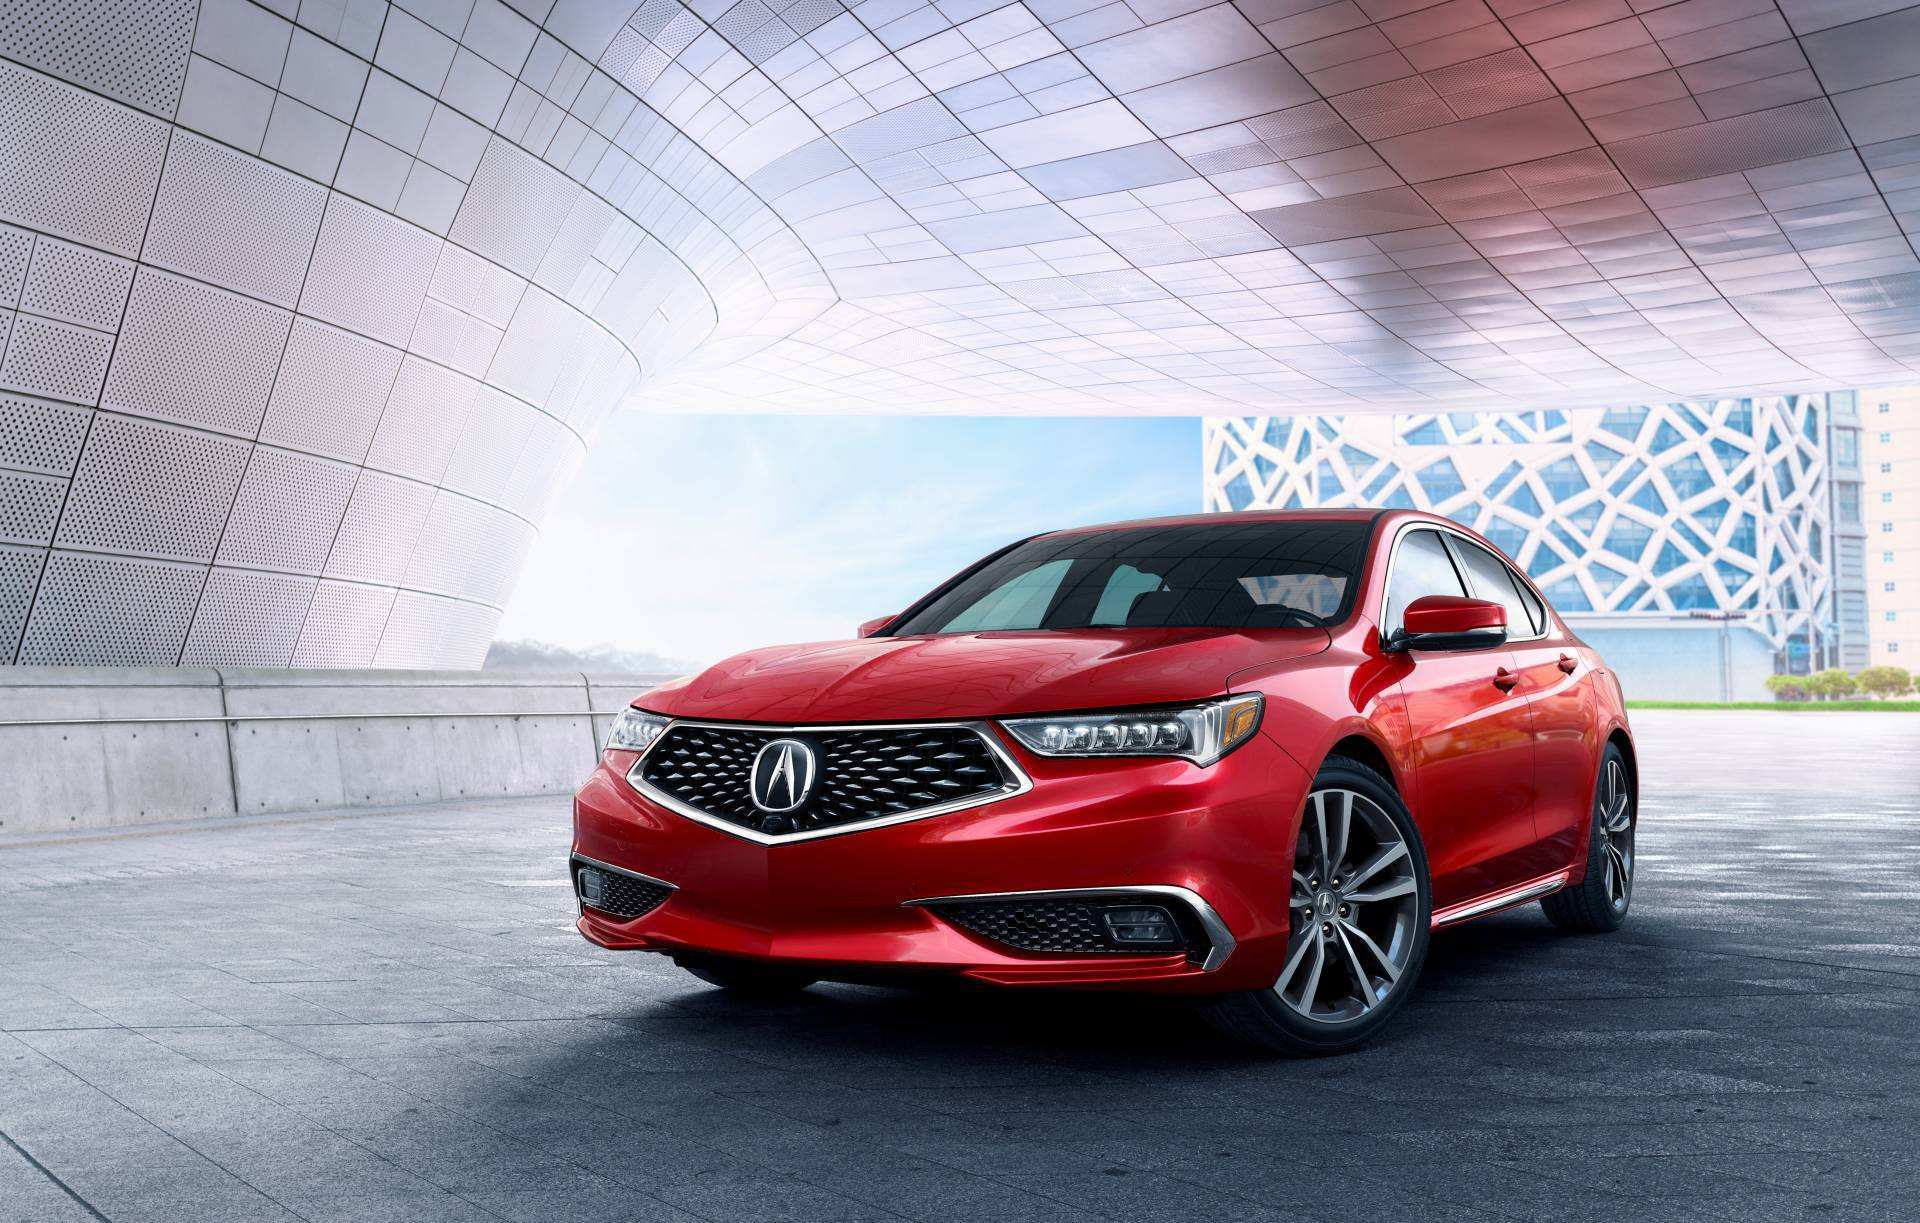 32 All New Acura New Cars 2020 Price